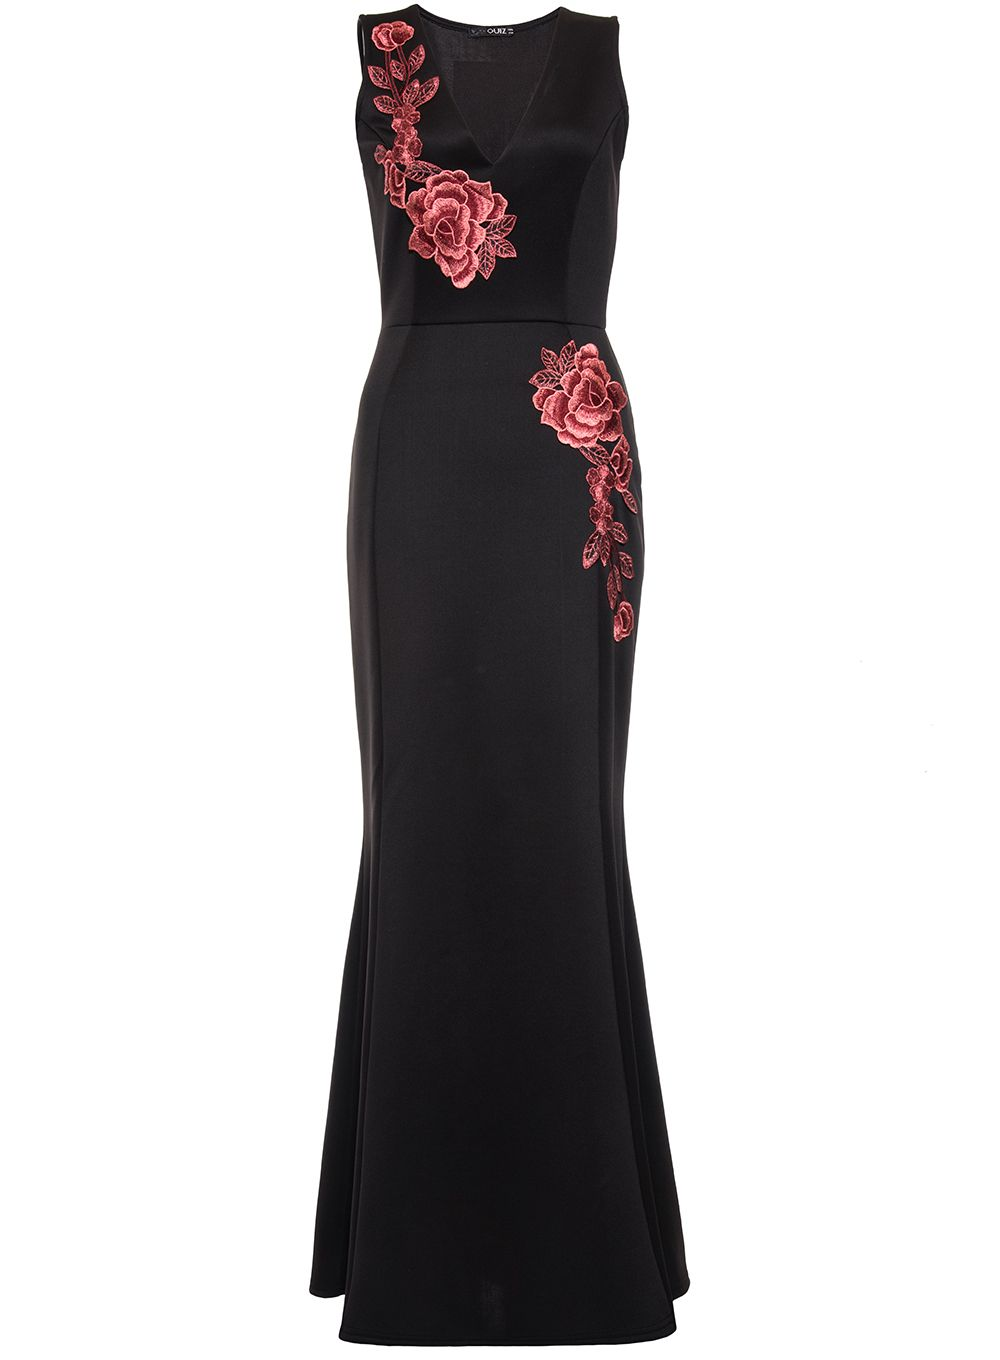 Quiz Black and Red Fishtail Maxi Dress, Black